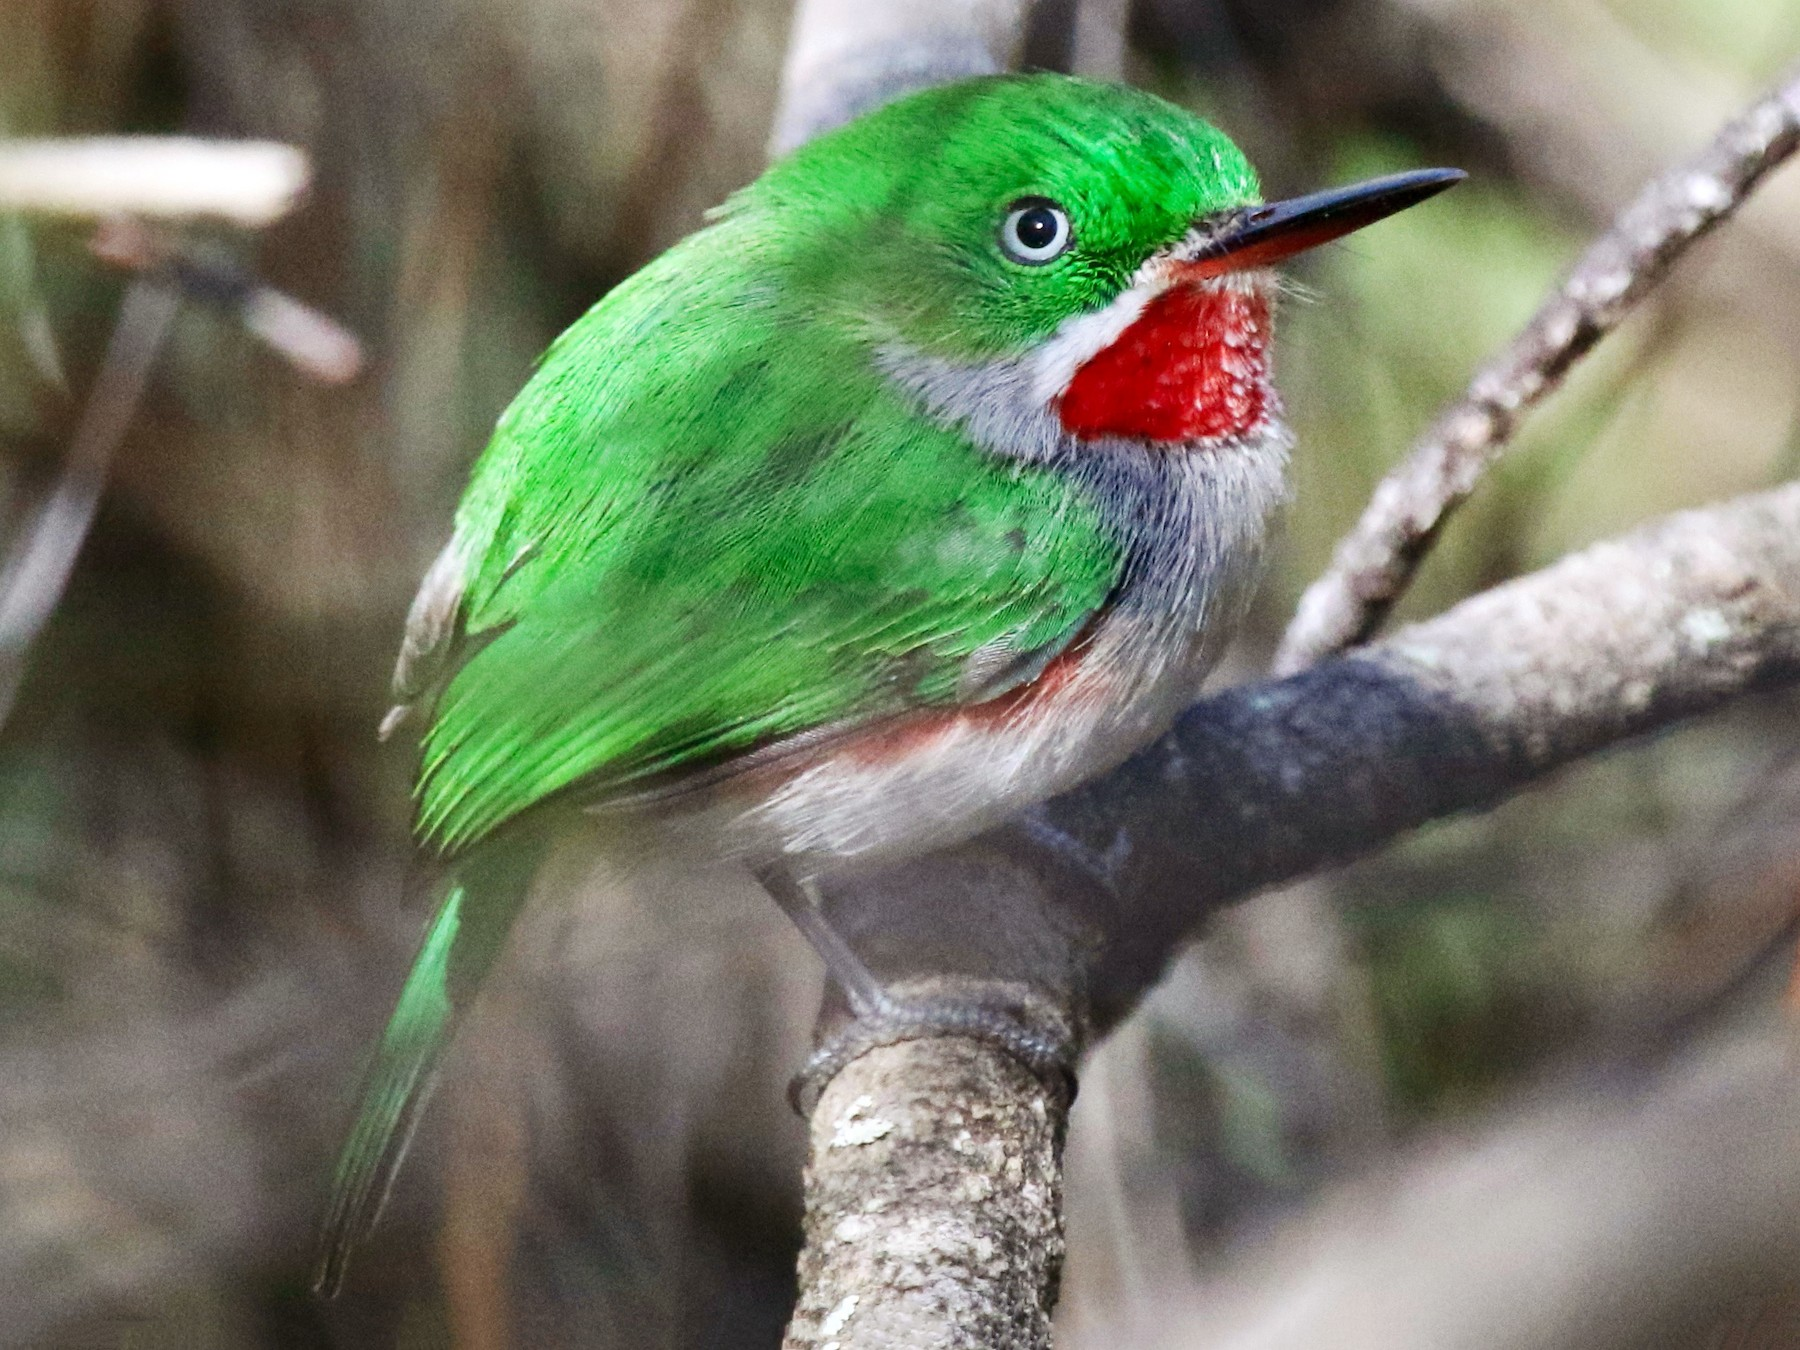 Narrow-billed Tody - Gil Ewing